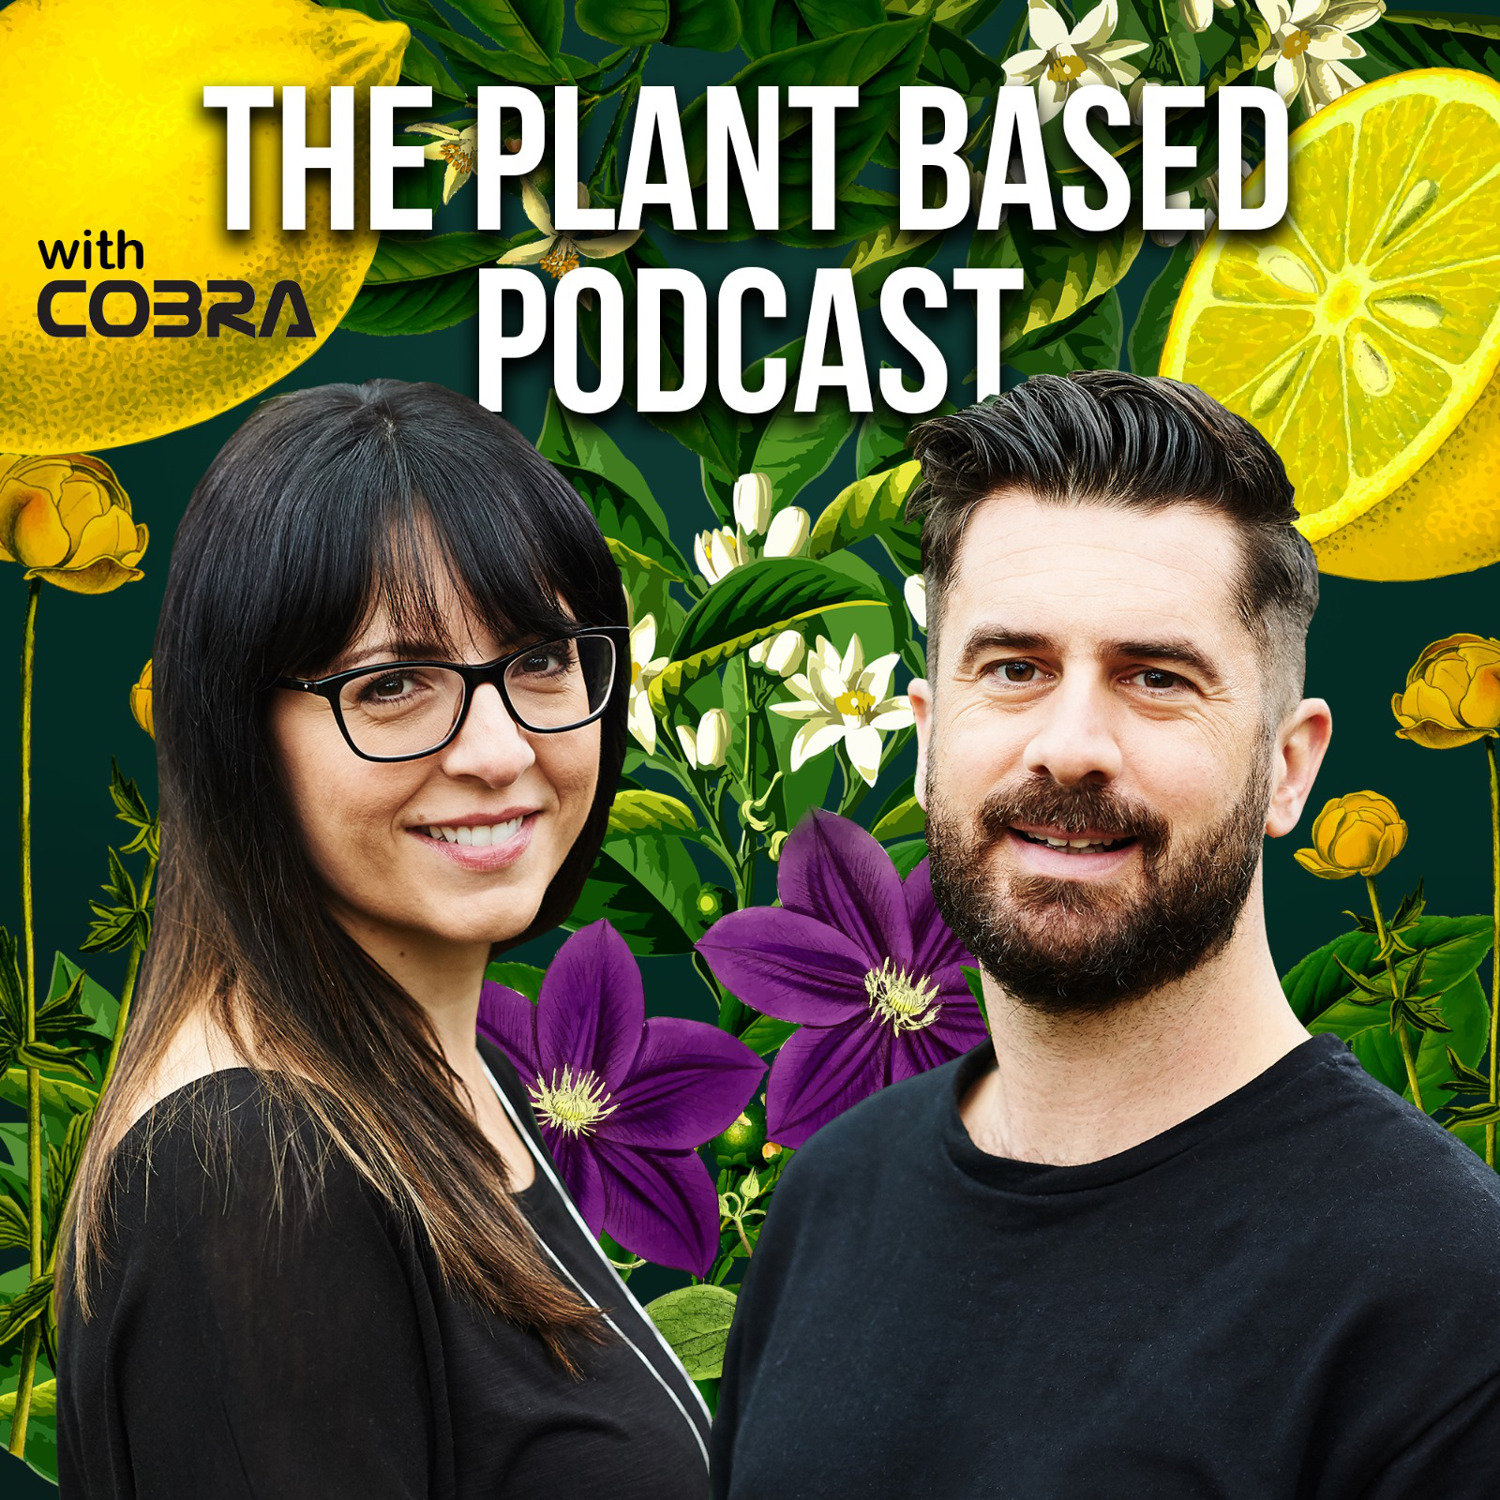 The Plant Based Podcast S4 Episode Nine - From Spice Girls to the Chelsea Flower Show – all the gossip from Nicki Chapman!